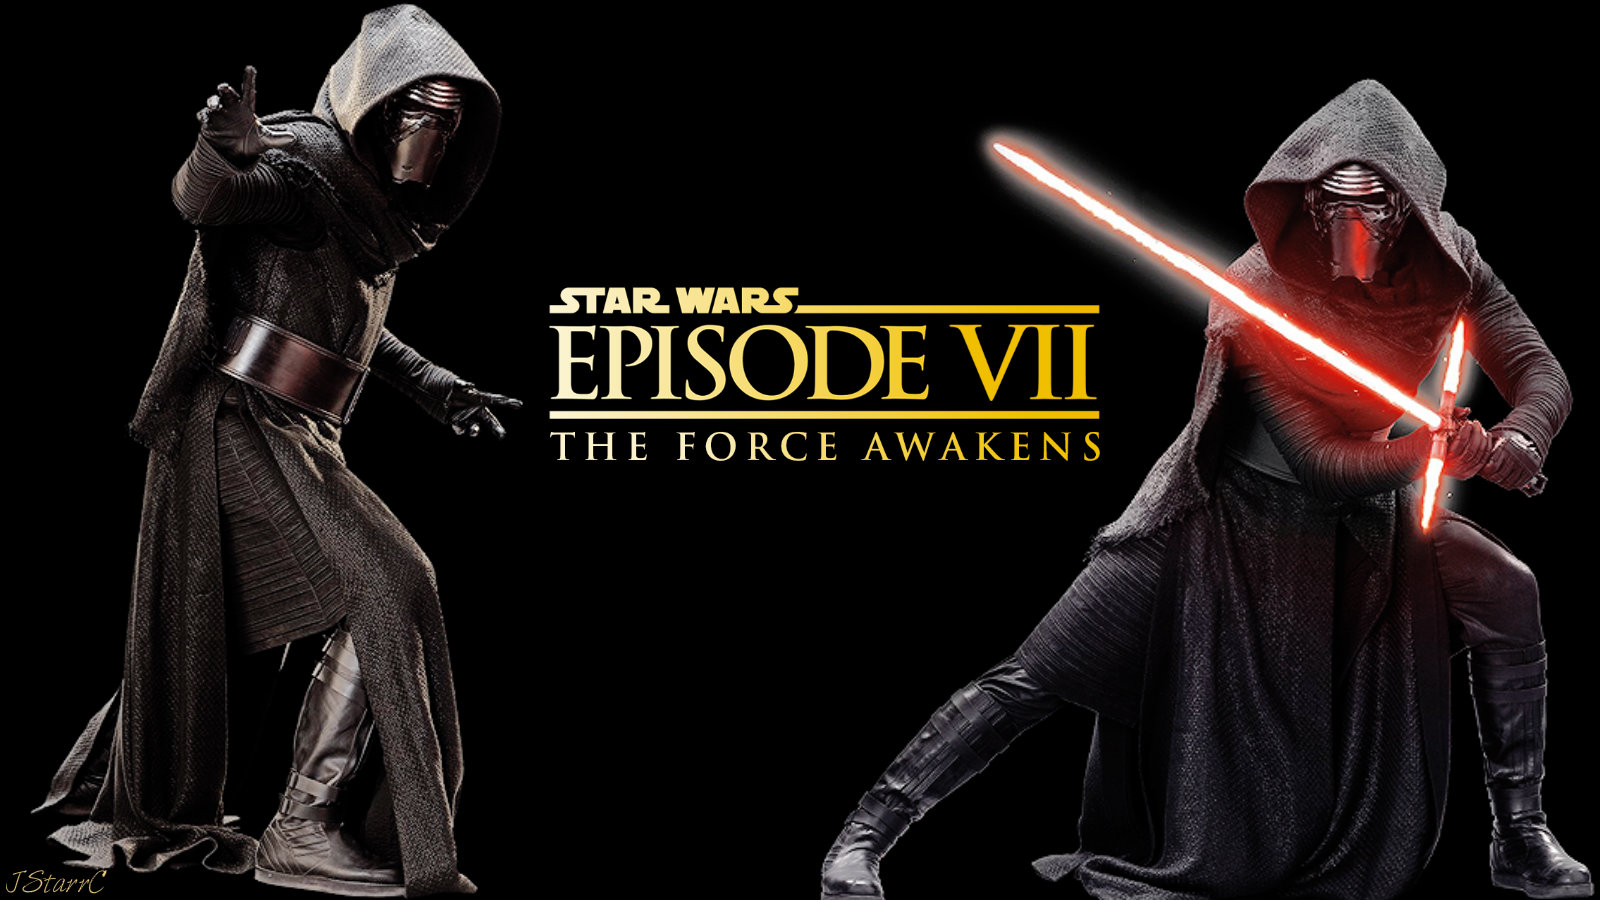 étoile, star Wars: Episode VII: The Force Awakens